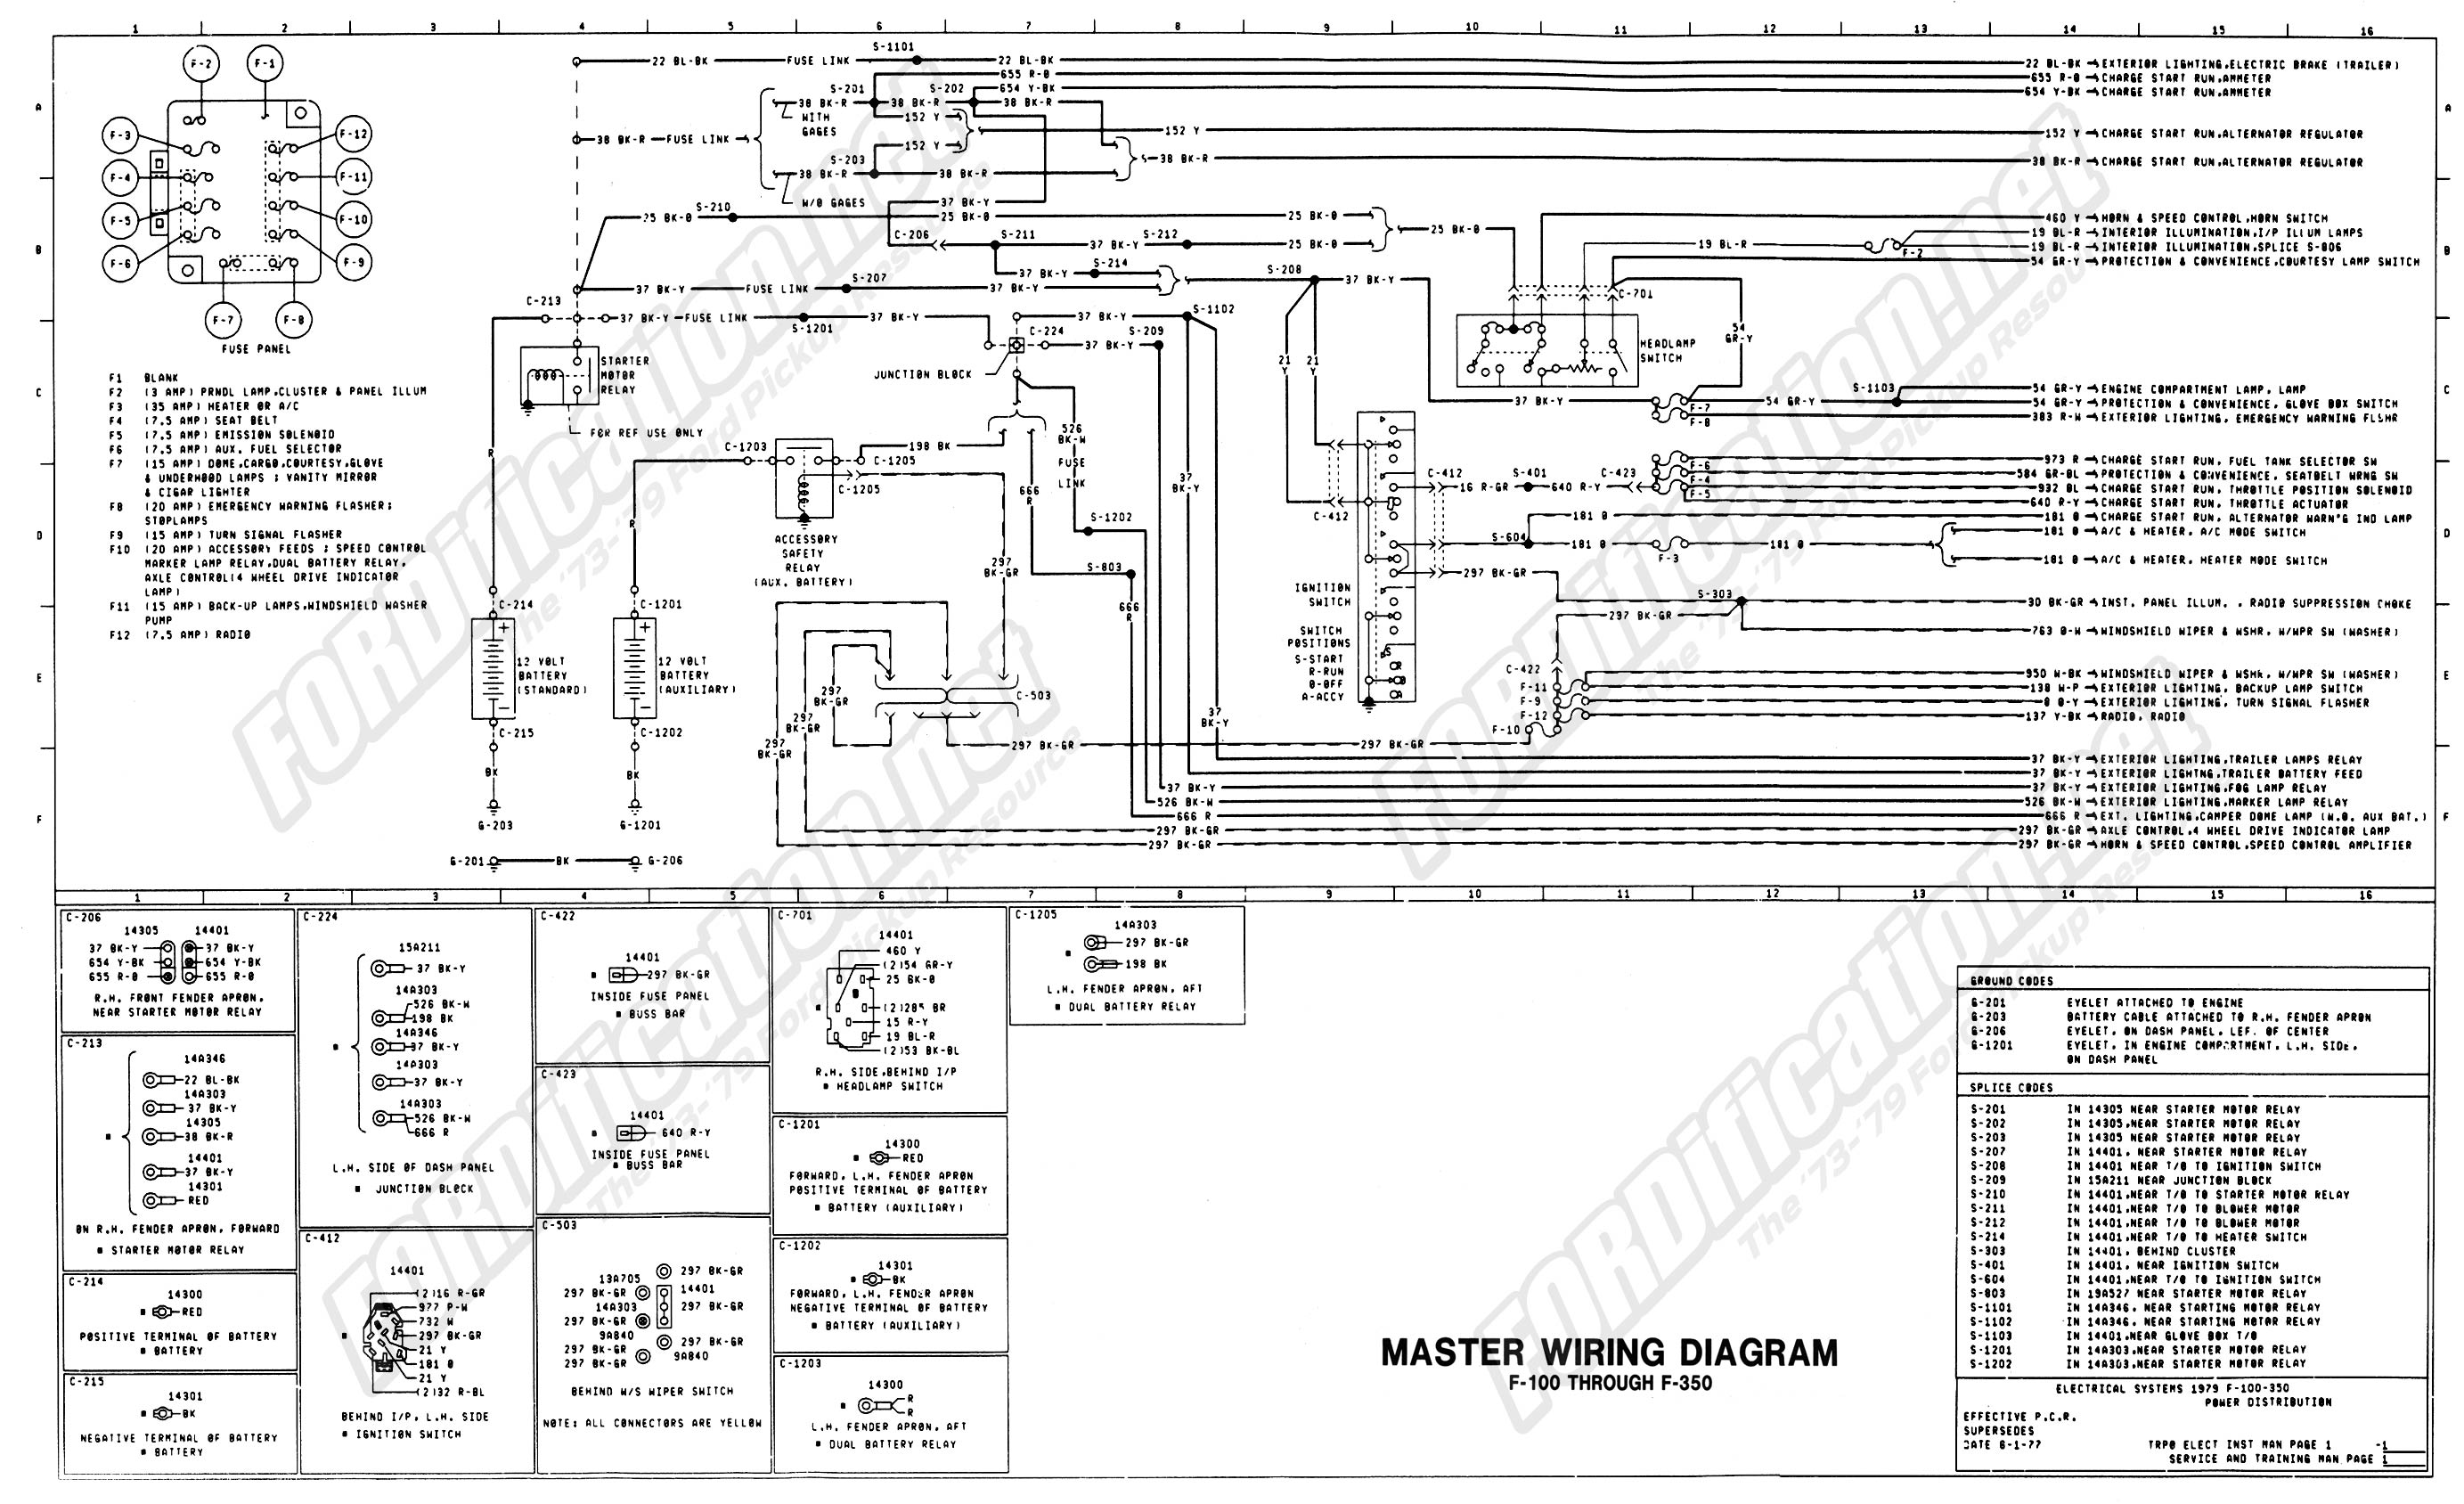 wiring_79master_1of9?resize\=665%2C406 sterling lt9500 wiring diagrams ford truck wiring diagrams \u2022 45 63  at soozxer.org